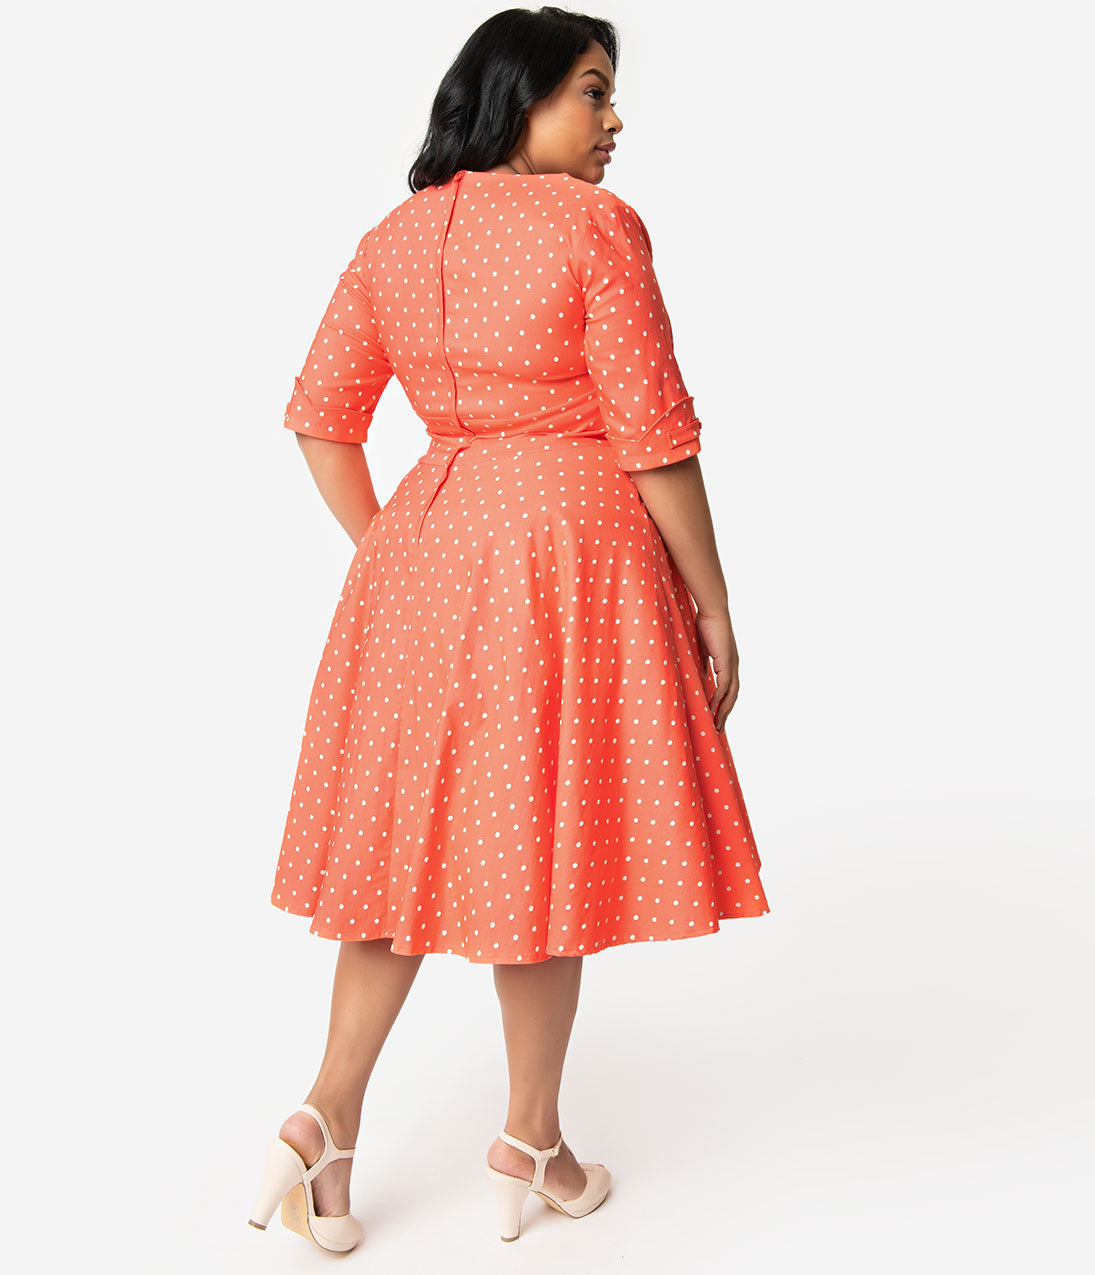 To acquire Clothes Hippie for women plus size pictures picture trends